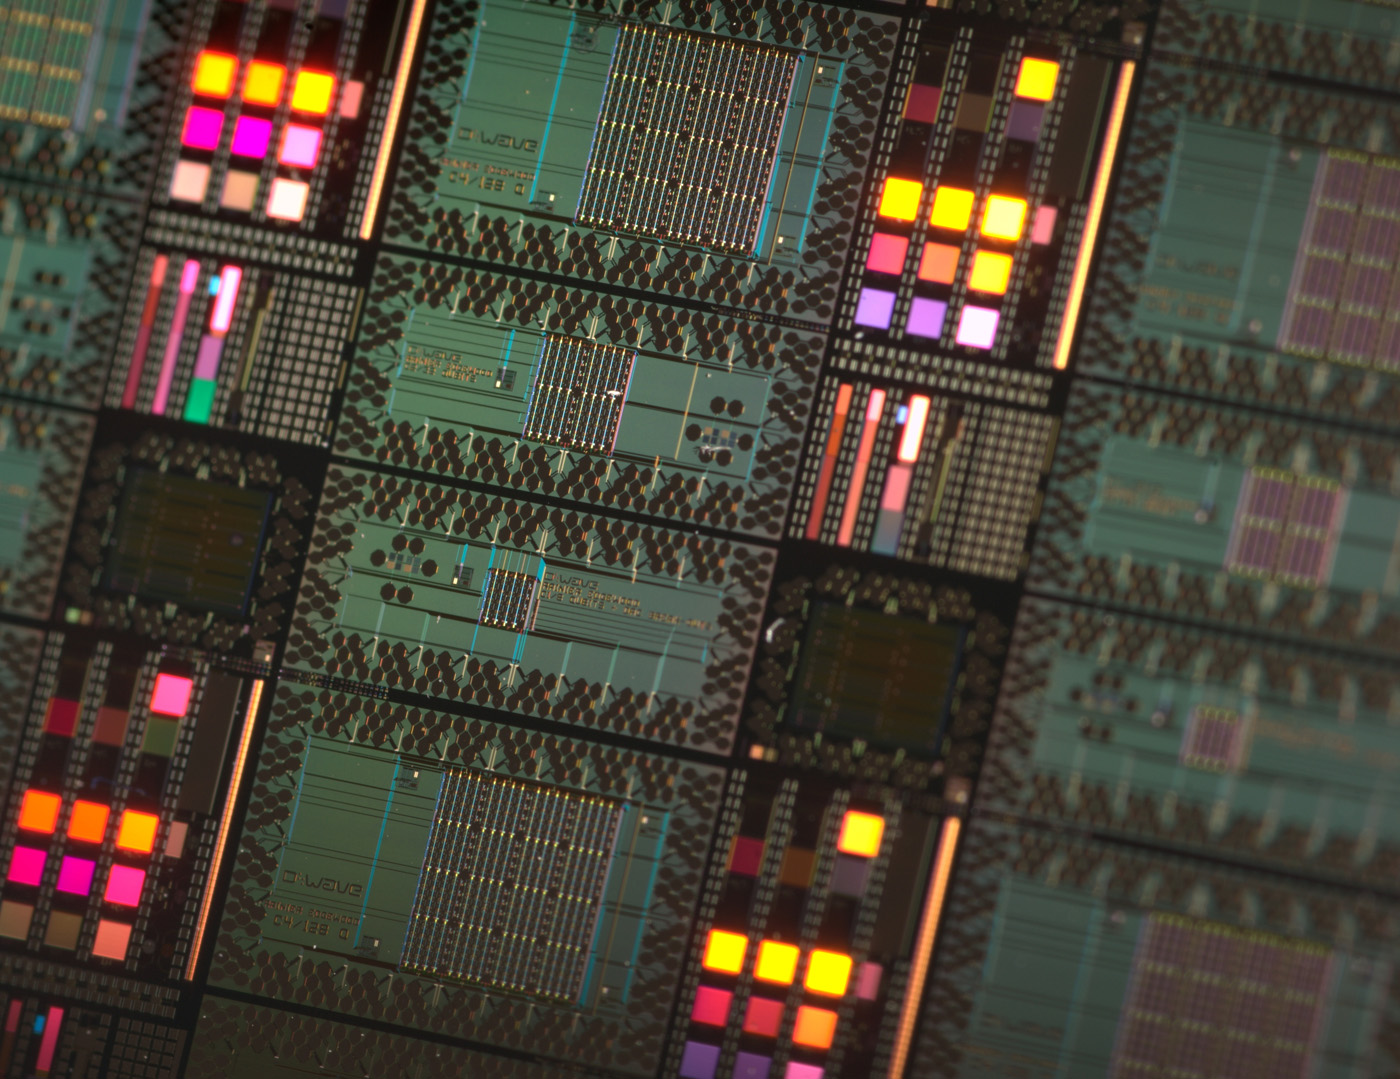 D-Wave quantum chip on a wafer